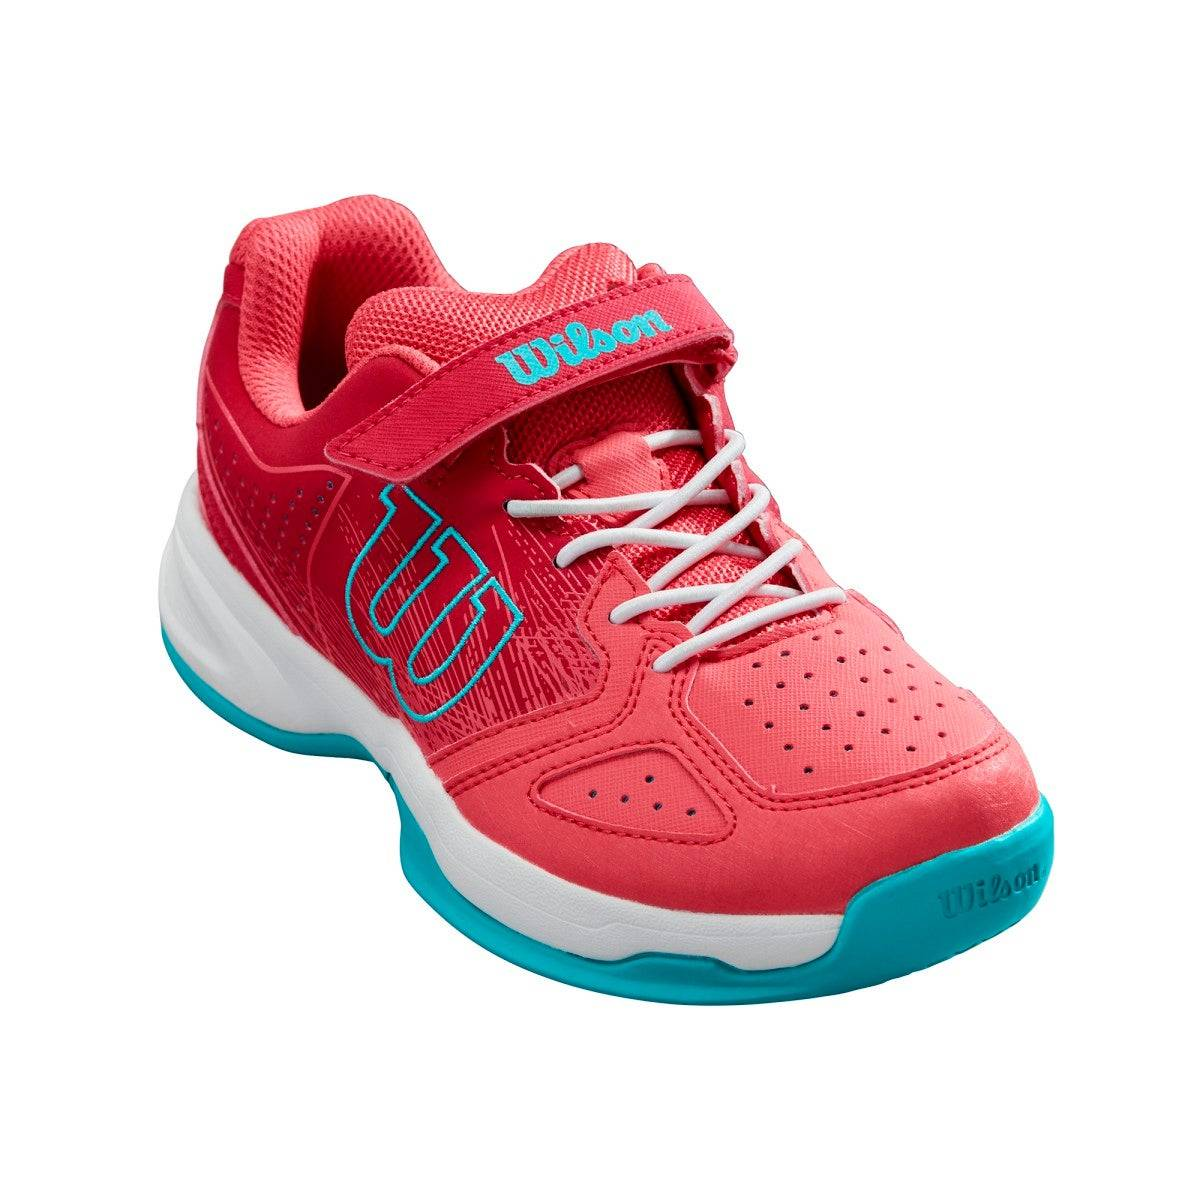 Wilson Junior Kaos K Tennis Shoes in Paradise Pink / White / Peacock Blue - Size: 1 Y  - Unisex - Paradise Pink/White/Peacock Blue - Size: 1 Y